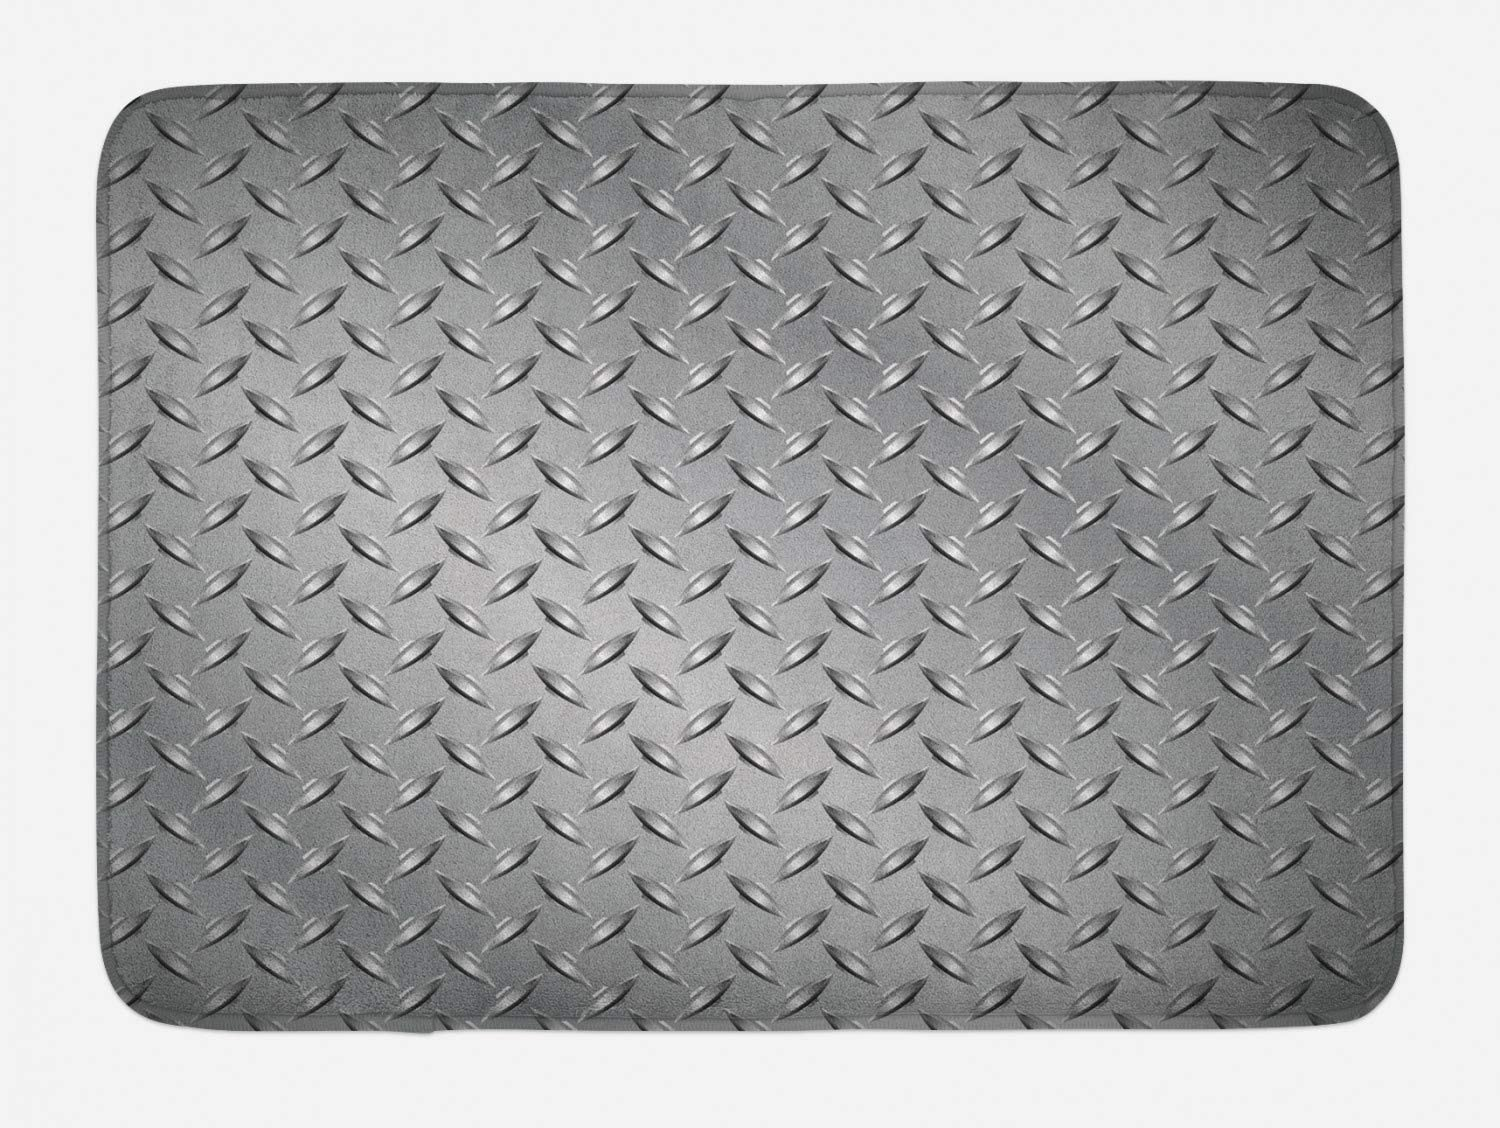 "Ambesonne Grey Bath Mat, Fence Design Netting Display with Diamond Plate Effects Chrome Motif Print Illustration, Plush Bathroom Decor Mat with Non Slip Backing, 29.5"" X 17.5"", Silver"